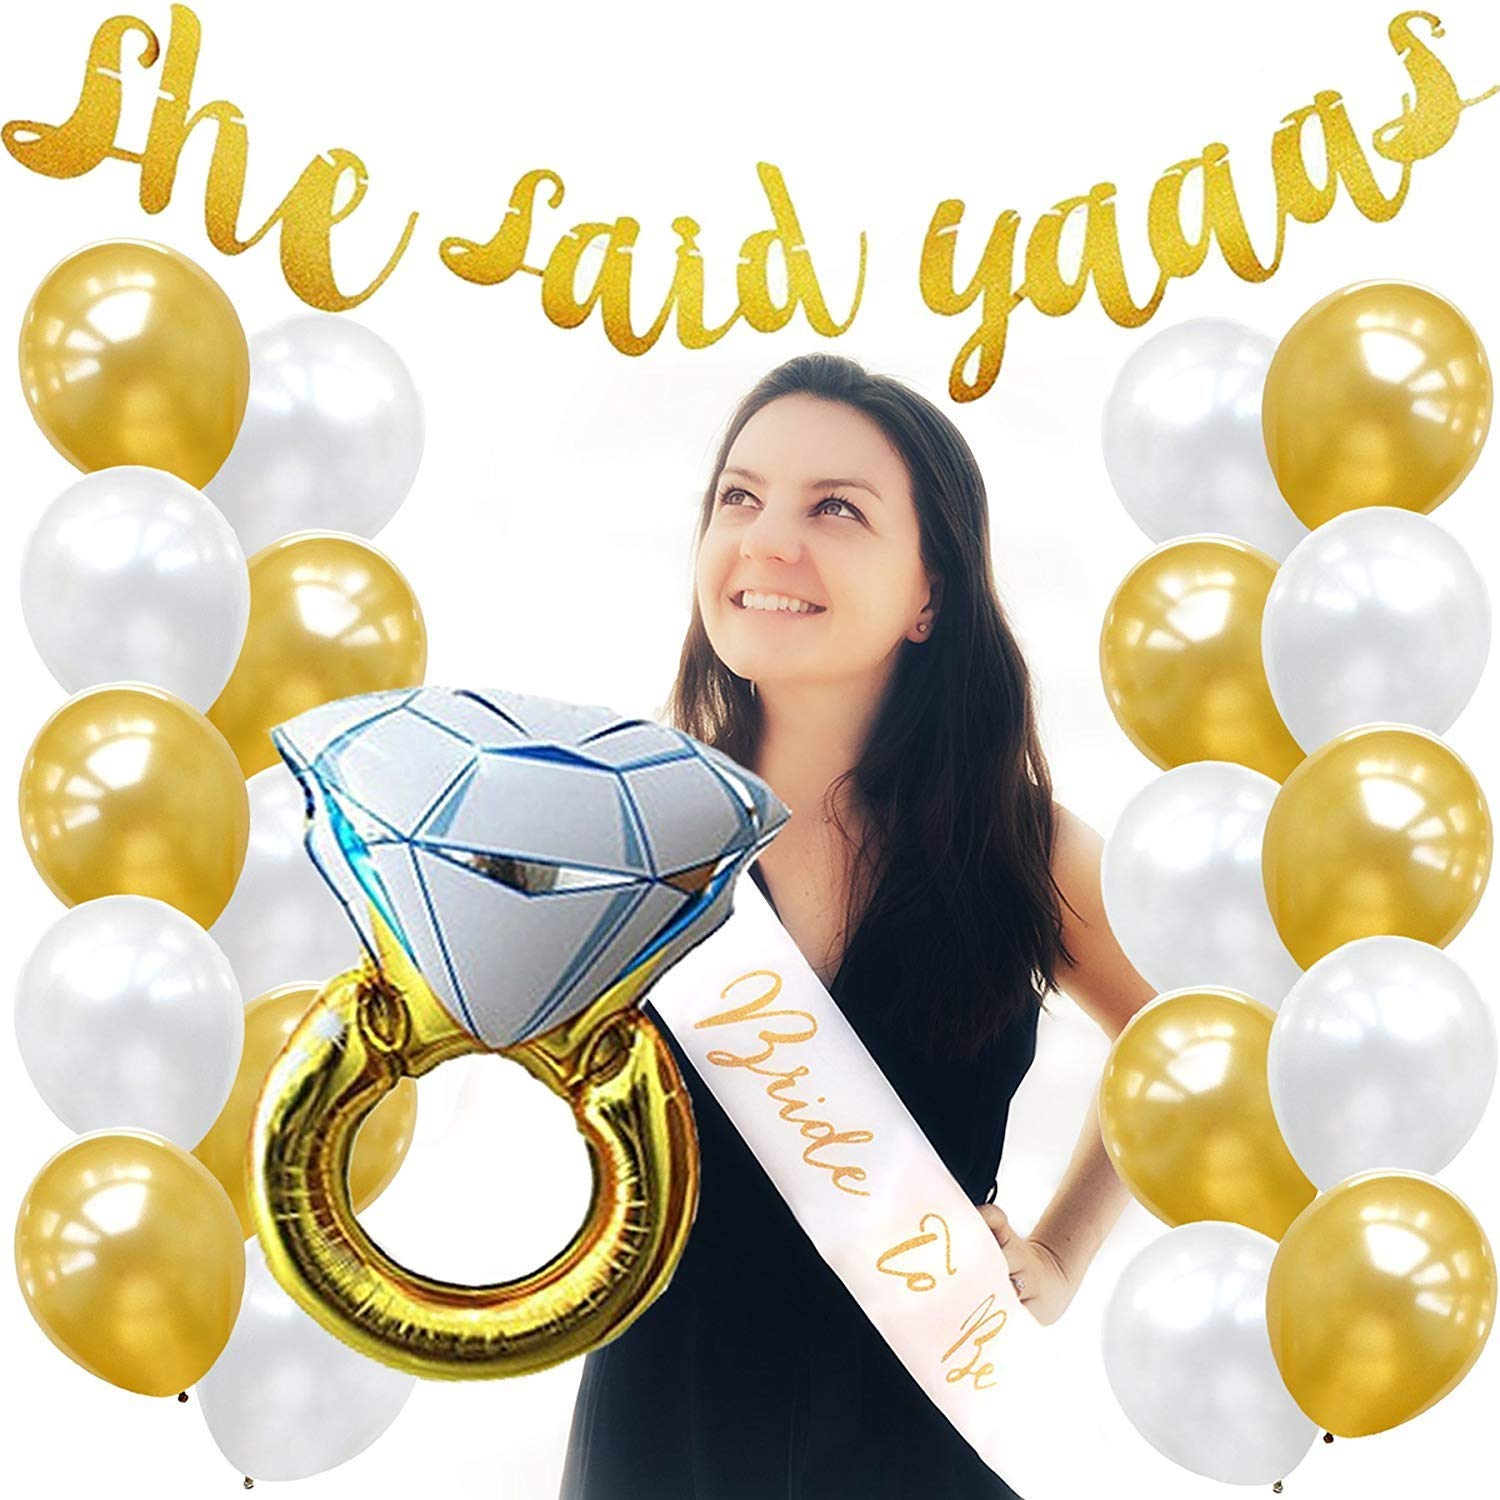 Bride to Be Sash 20 Gold and White Balloons Gold Bachelorette Party Pack Bridal Shower Decorations Wedding Supplies Set,She Said Yaaas Banner Engagement Ring Foil Balloon